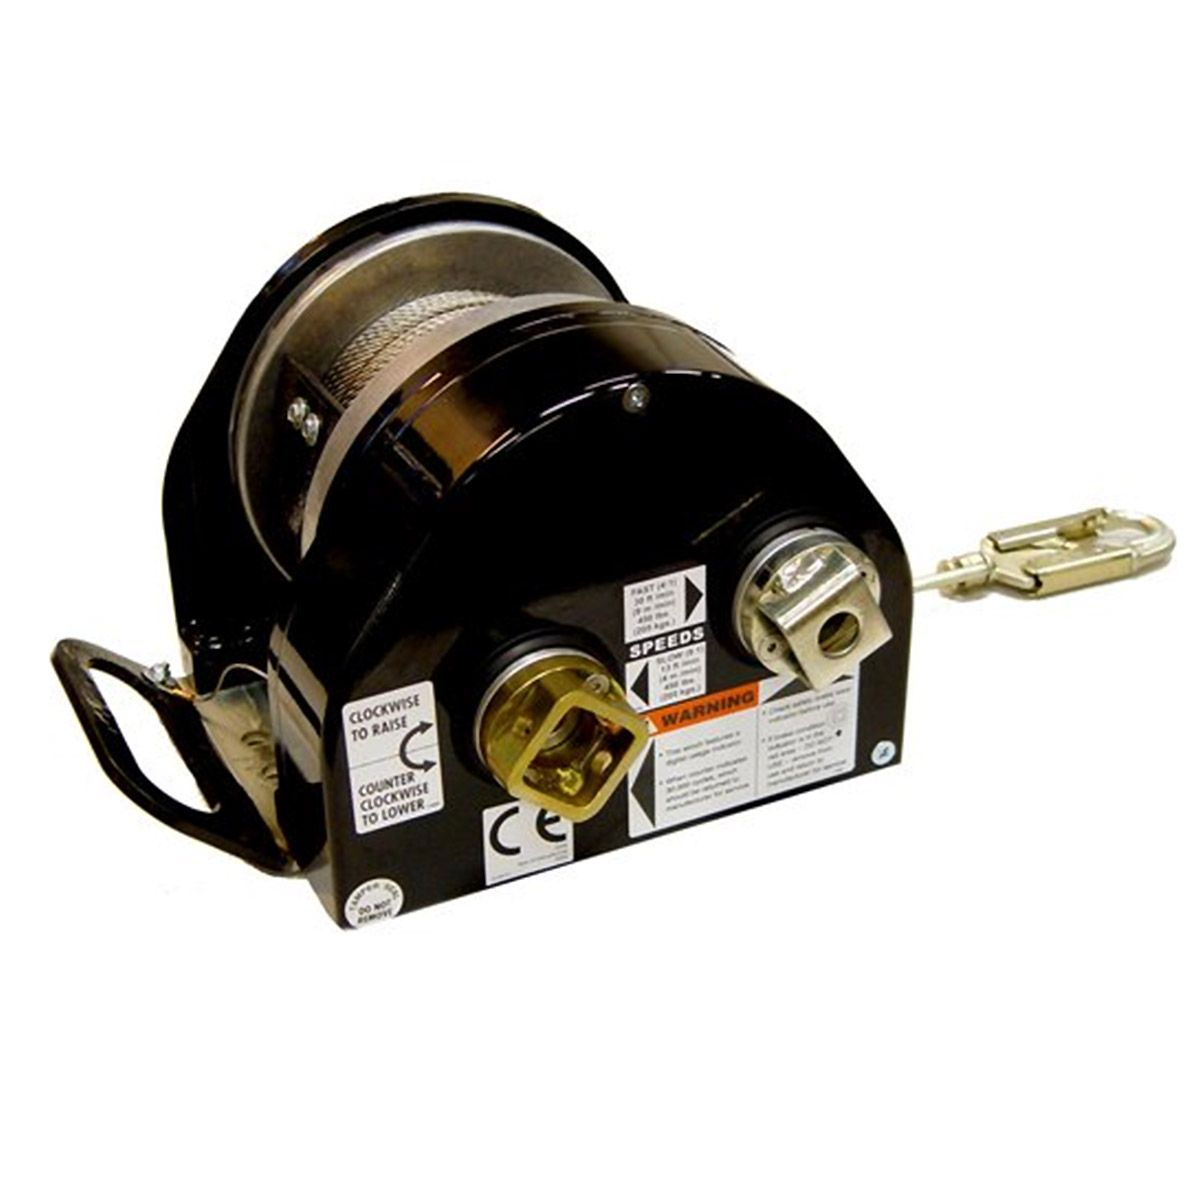 DBI SALA Advanced Winch - Digital 300 Series - Power Drive